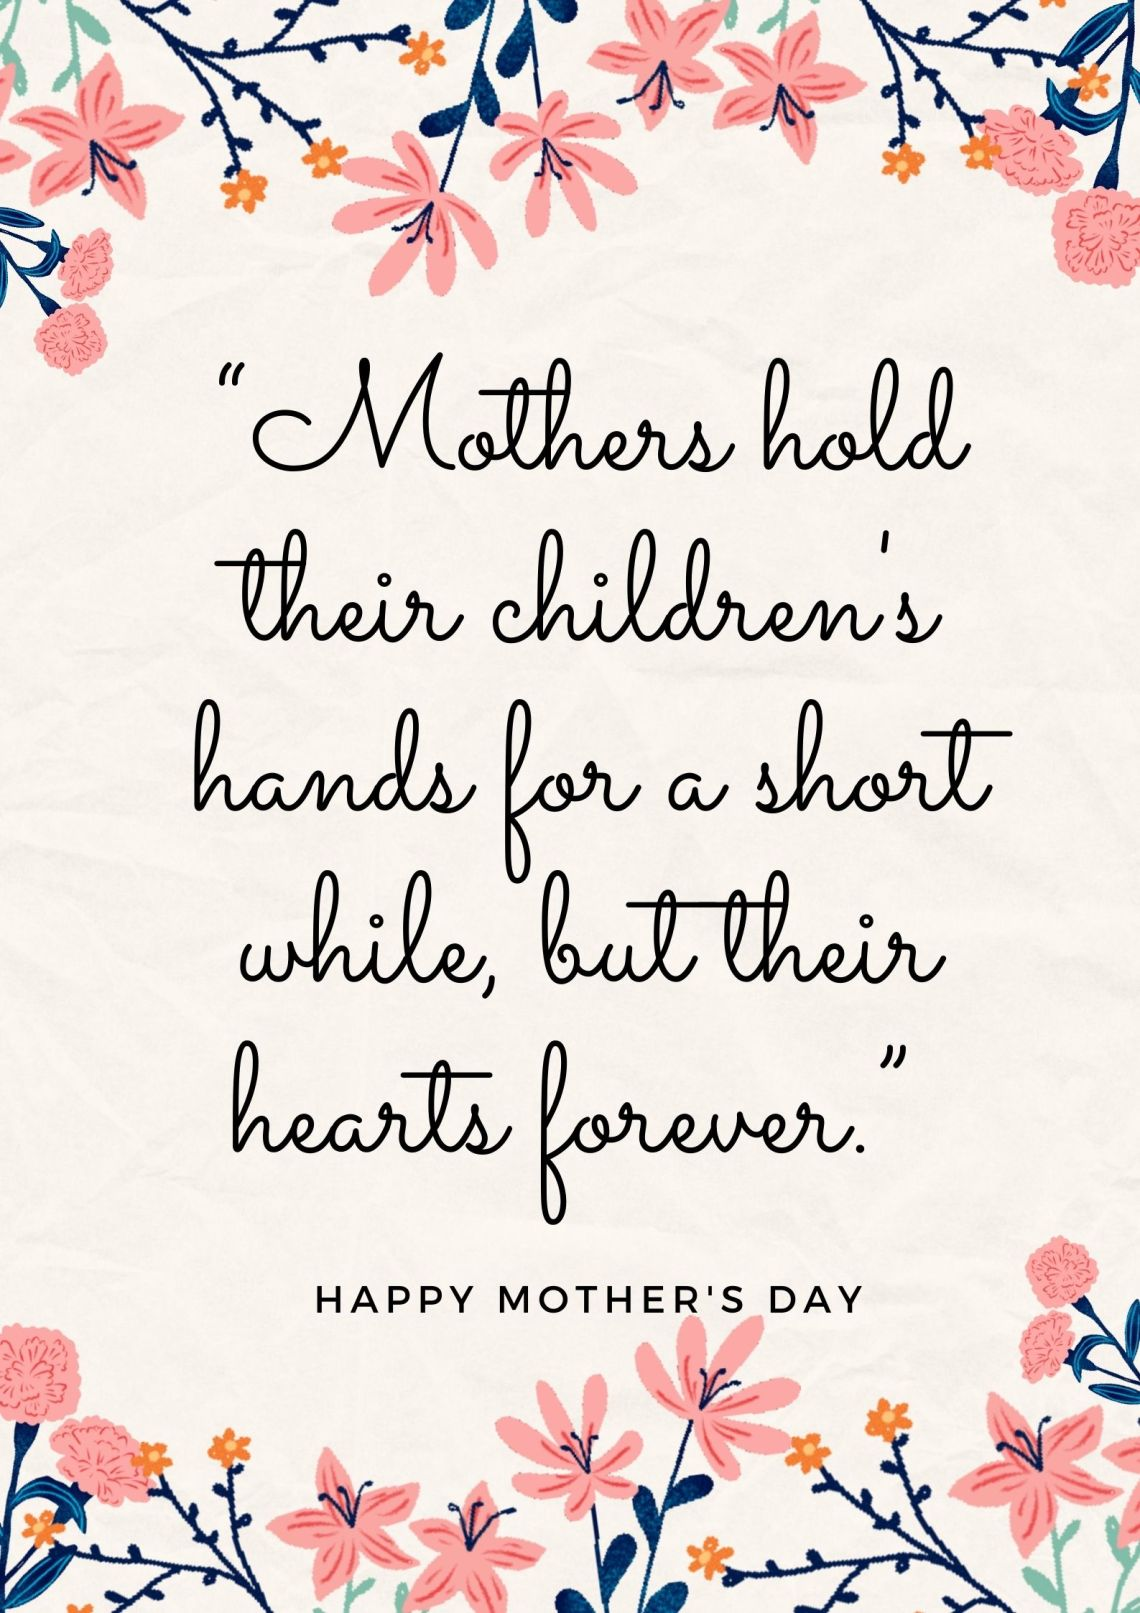 Mother's Day quotes 2021 å